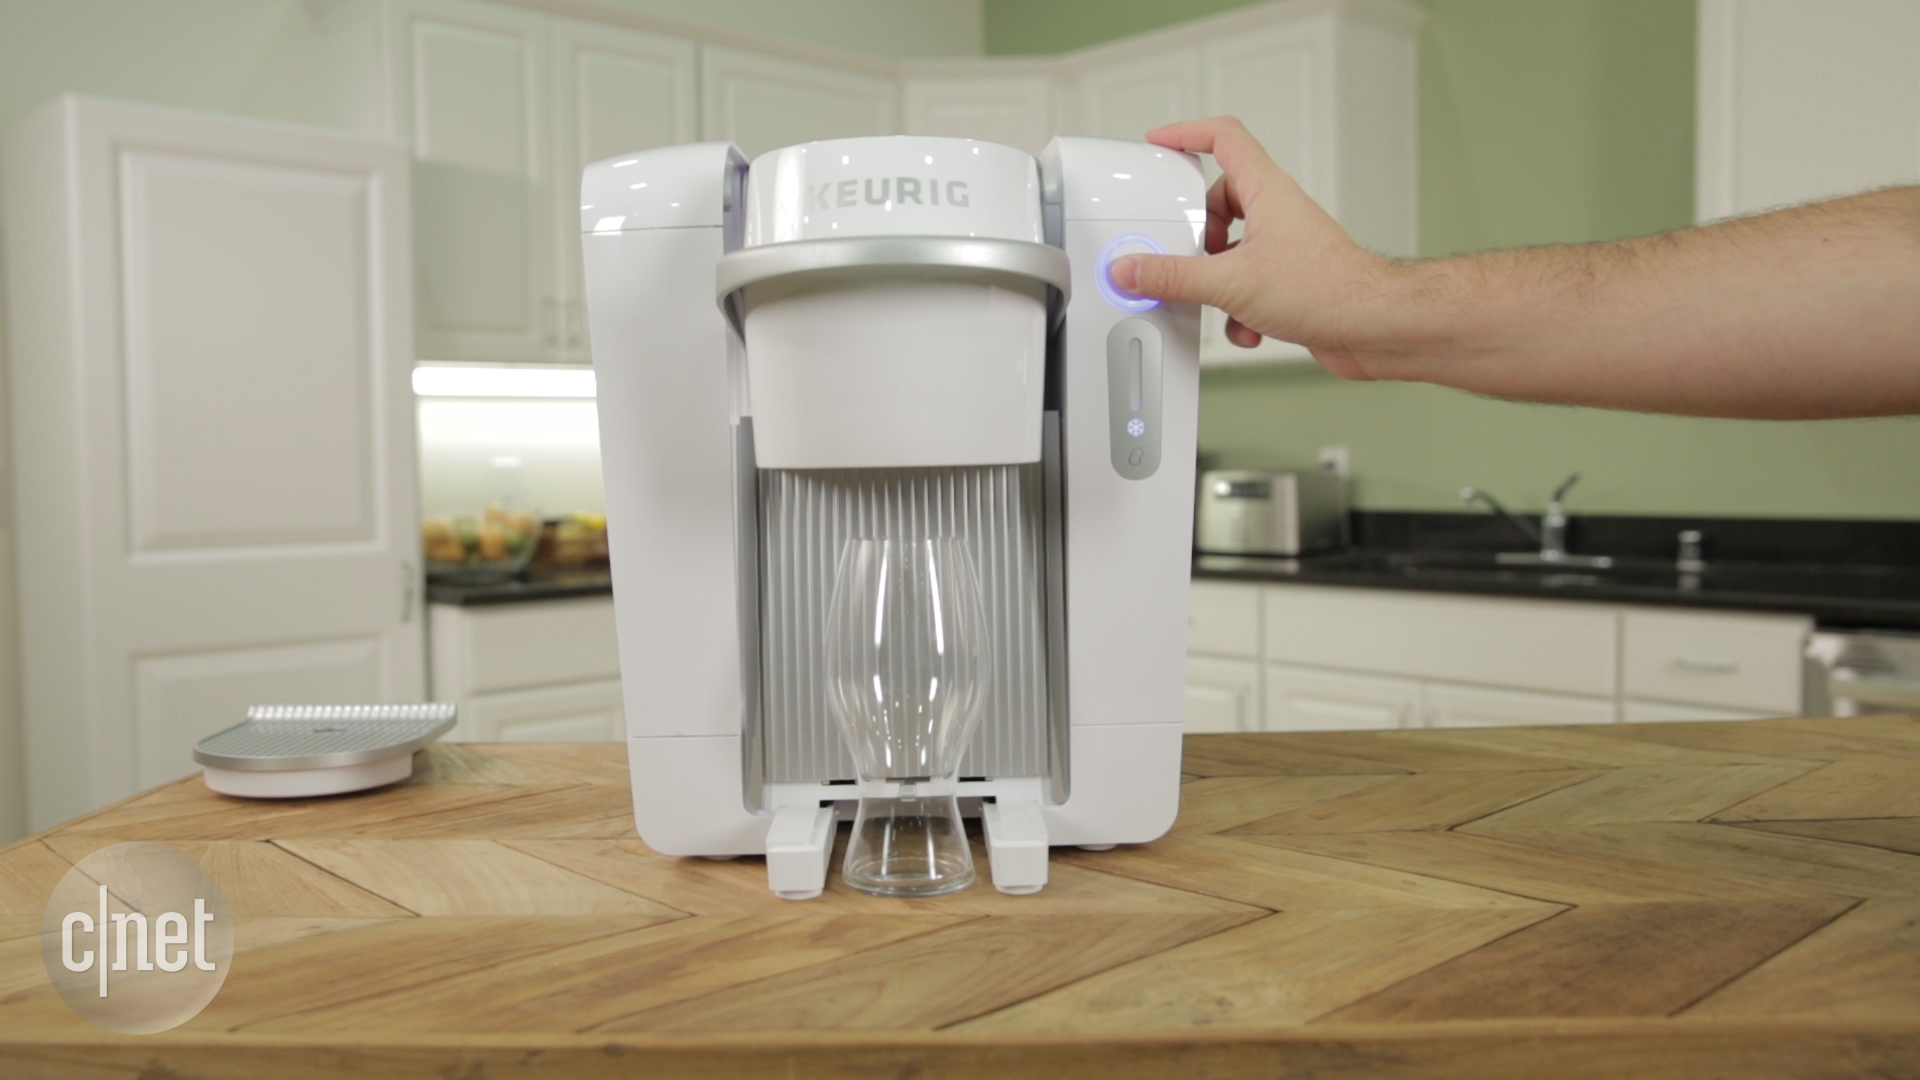 Video: Keurig Kold is obscenely expensive and could taste better